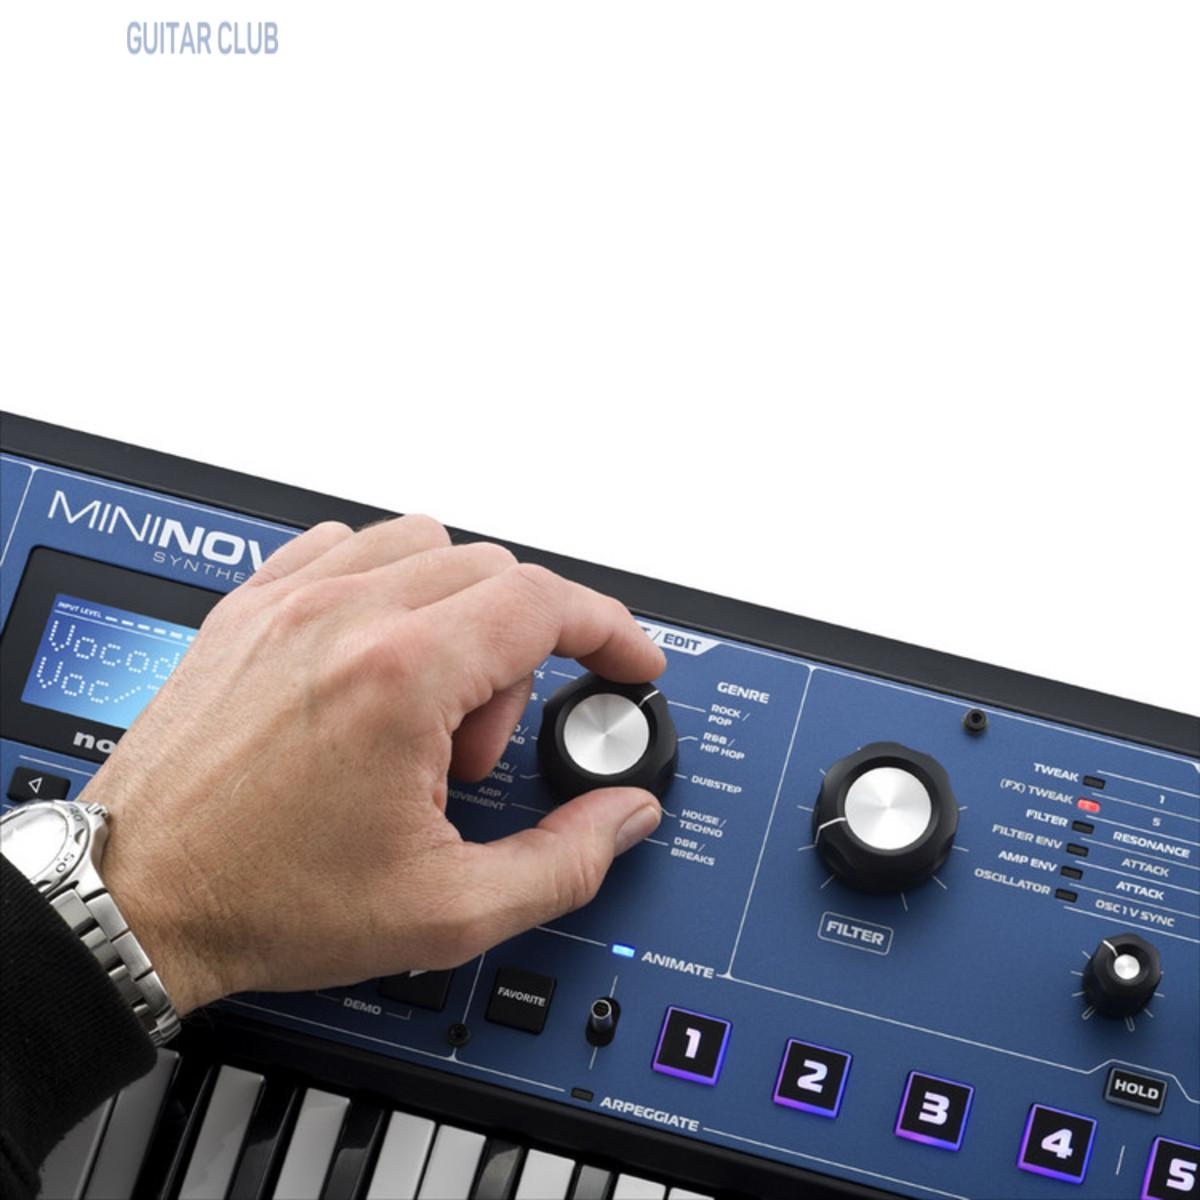 Синтезатор Novation MiniNova Фото 3